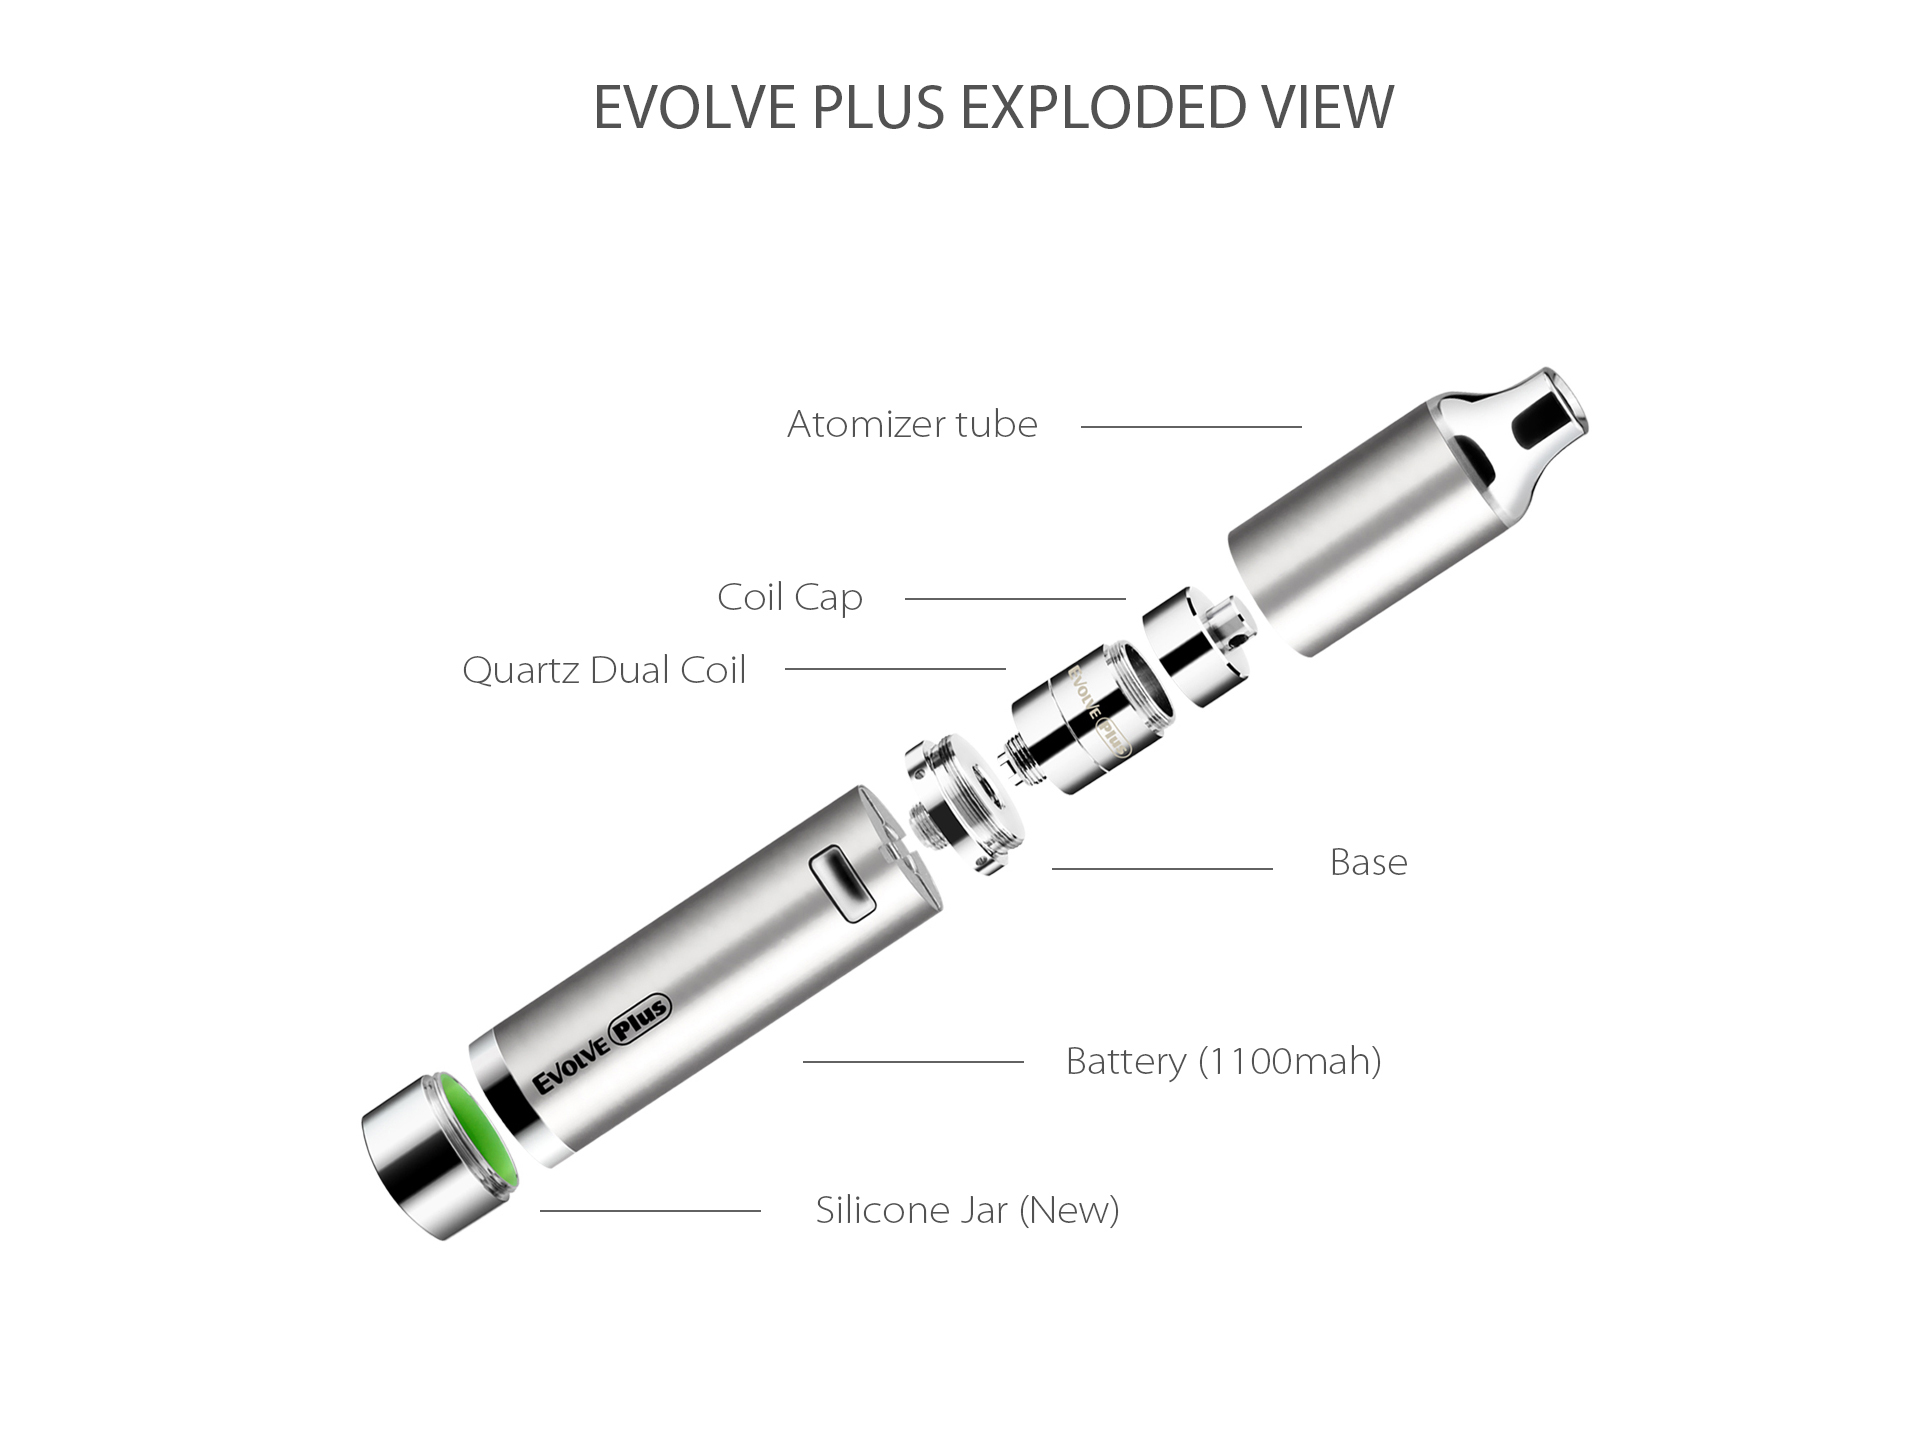 Yocan Evolve-Plus vaporizer pen 2020 version exploded view.